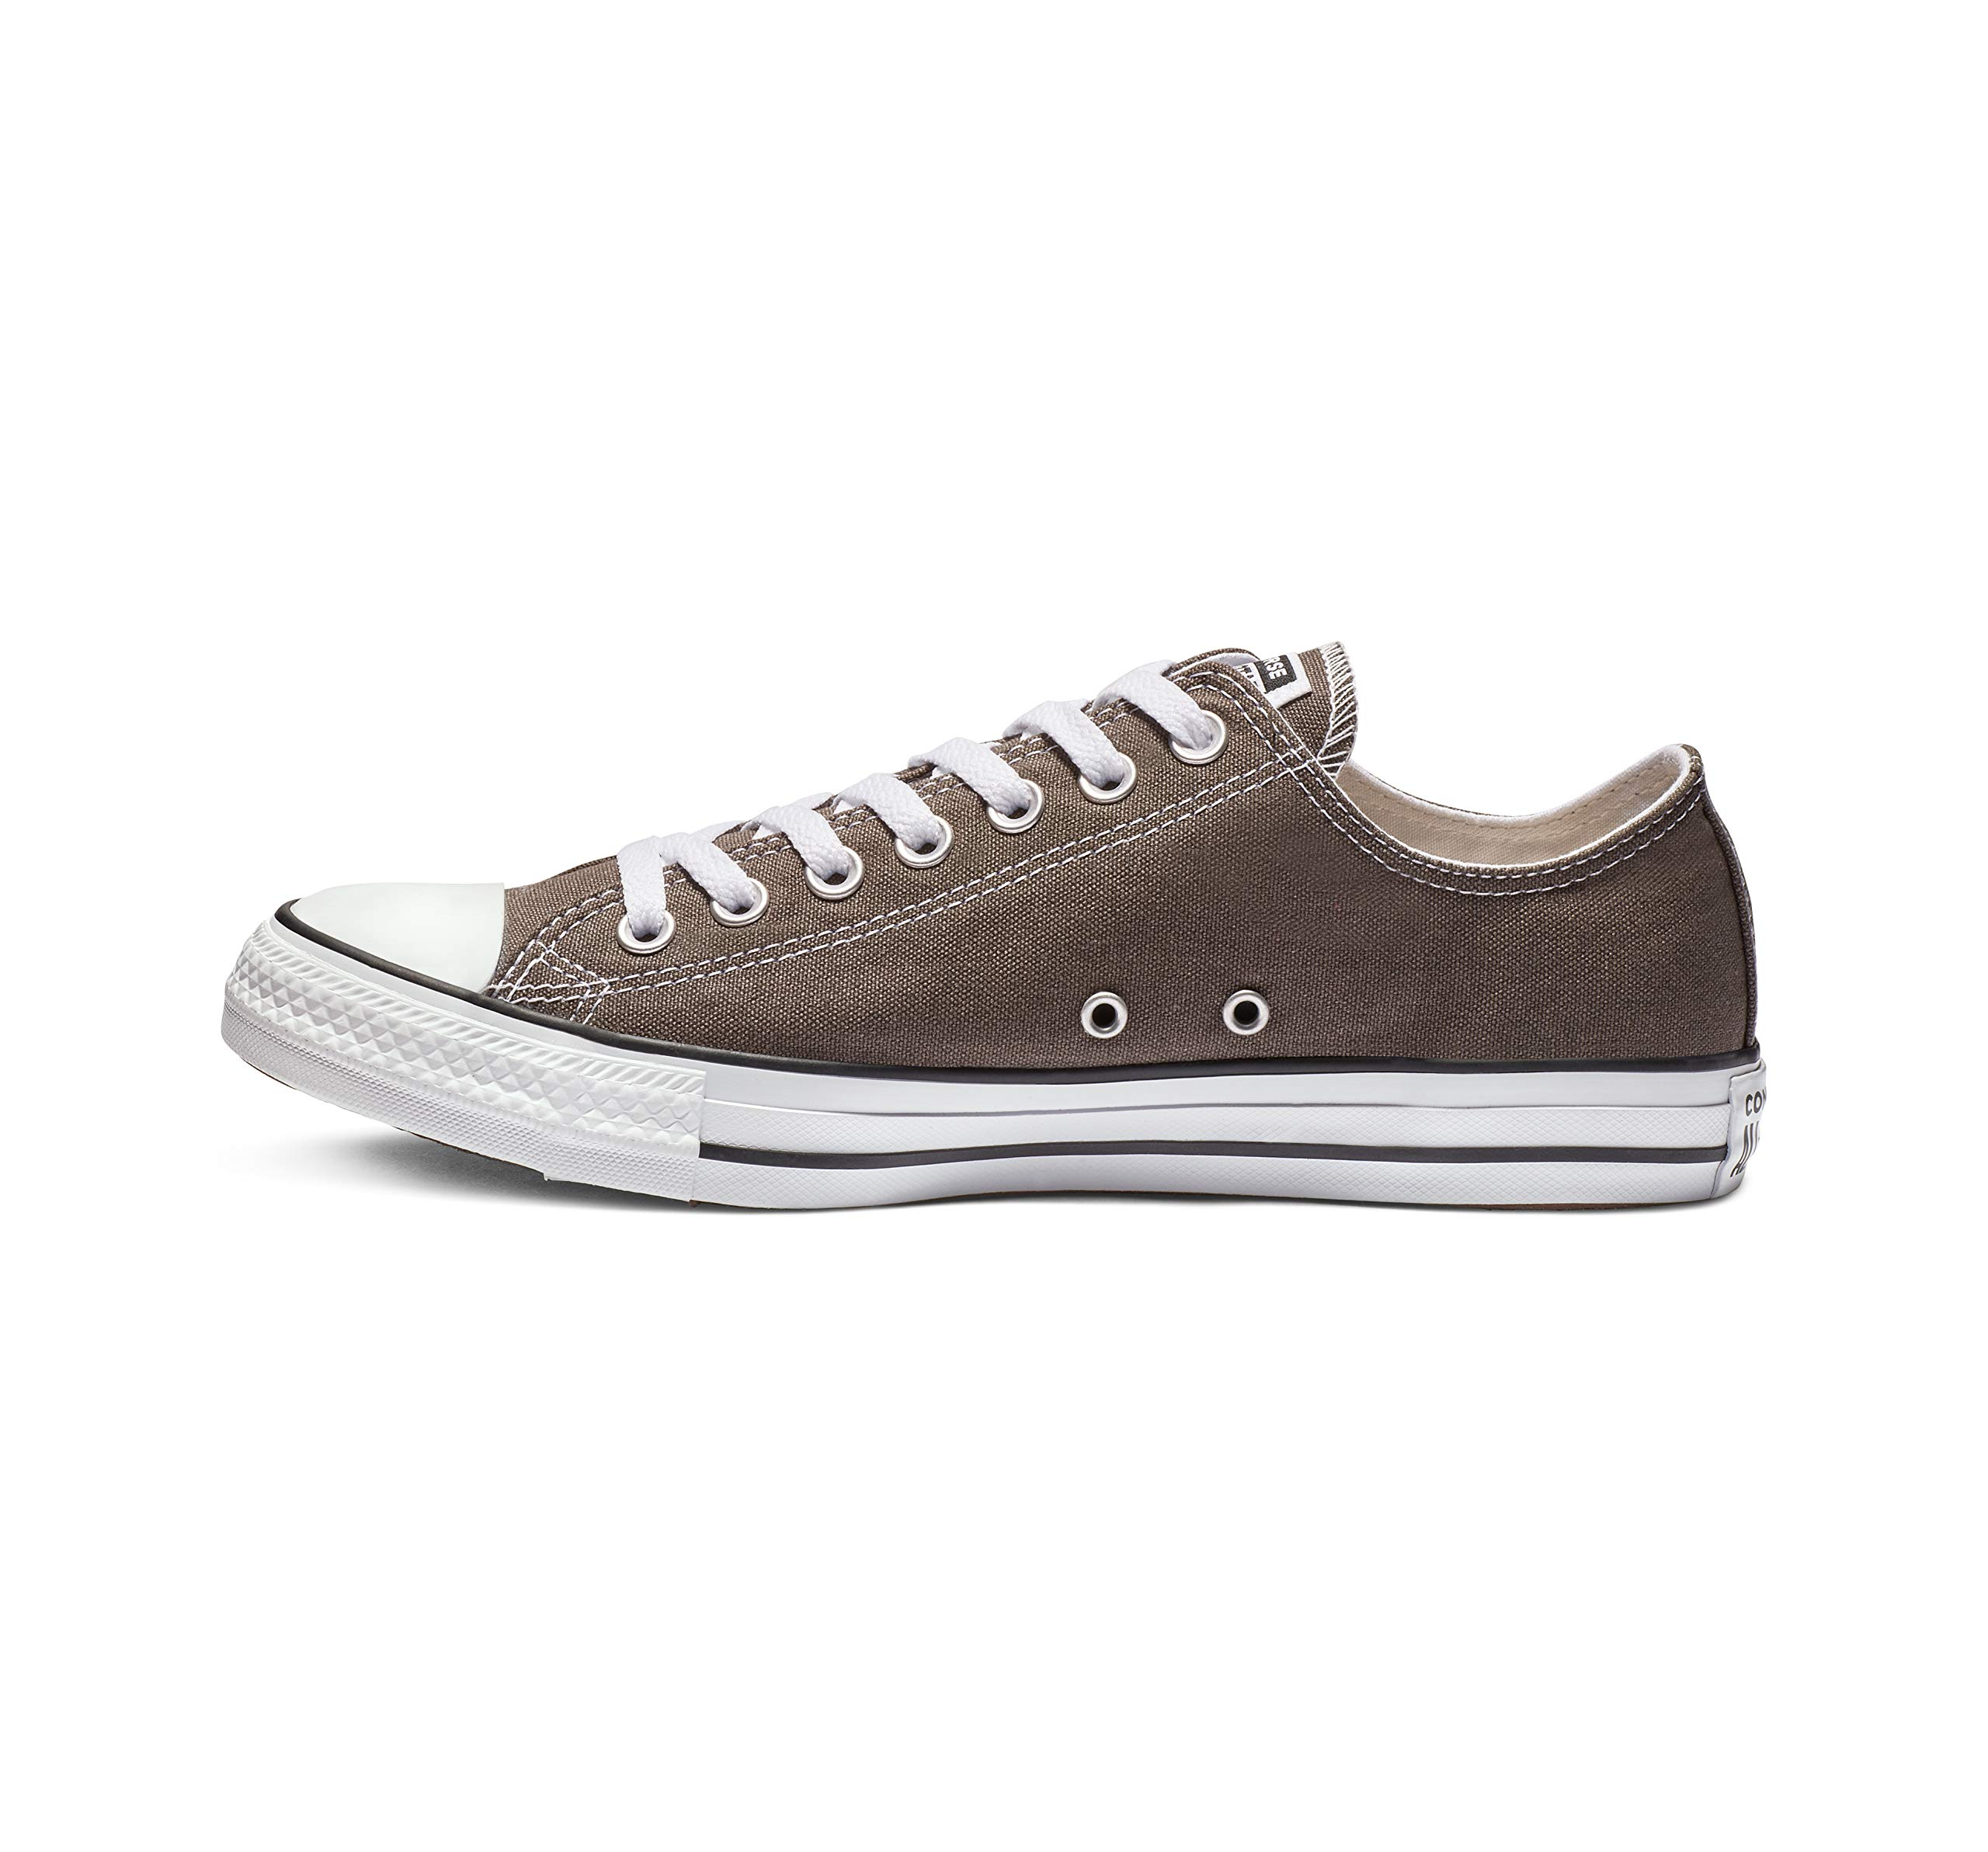 Converse Chuck Taylor All Star Canvas Low Top Sneaker,Charcoal,3 US Men/5 US Women